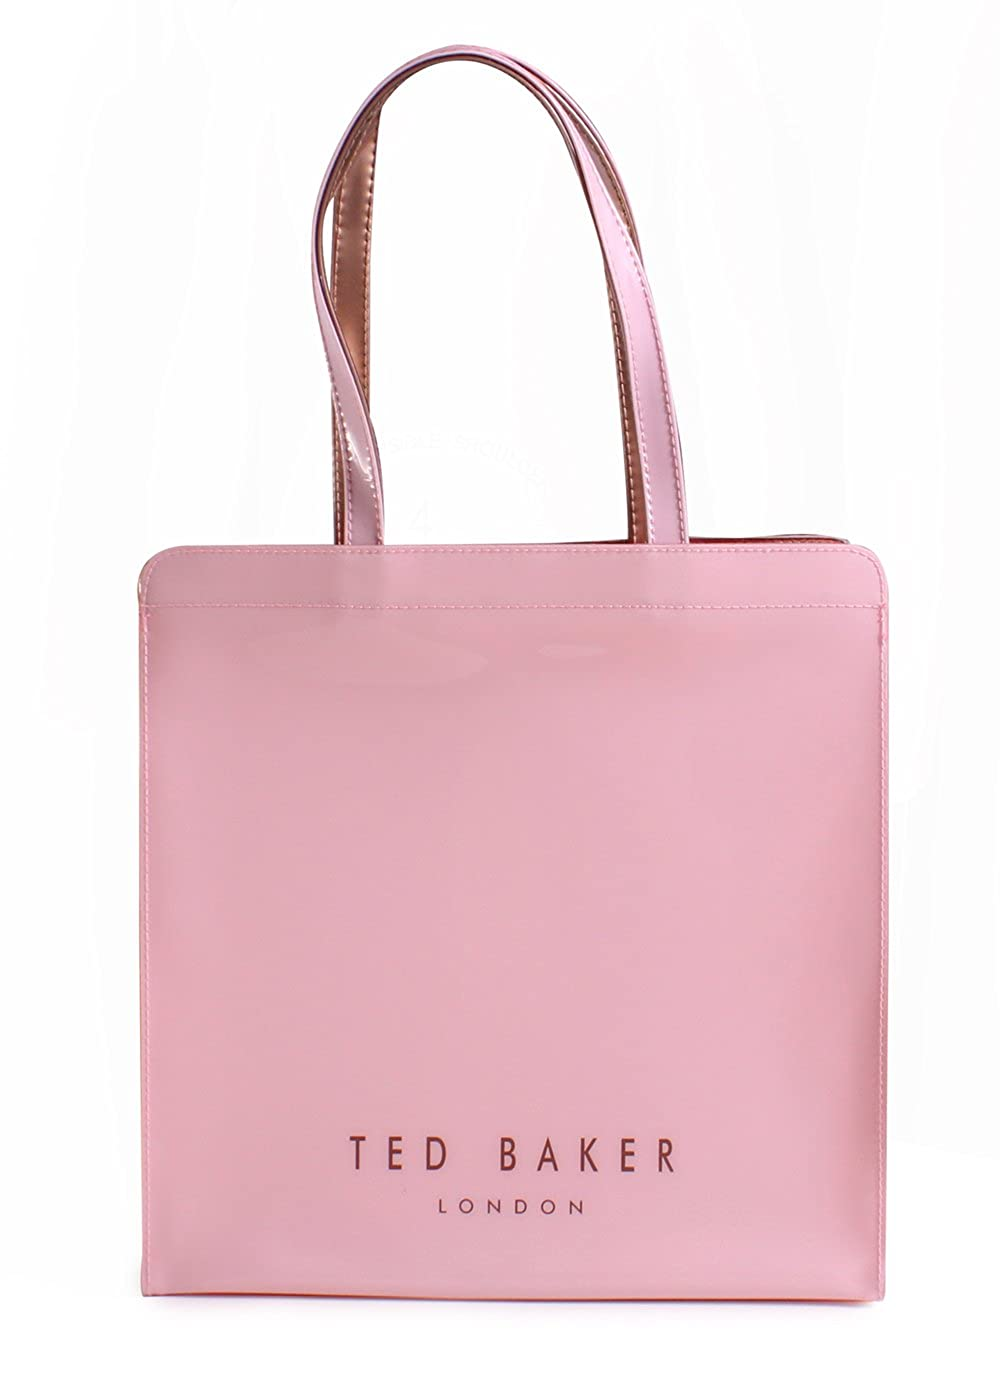 ba7e49f64b33ea Ted Baker London Vallcon Bow Detail Large Icon Bag in Pale Pink   Amazon.co.uk  Clothing